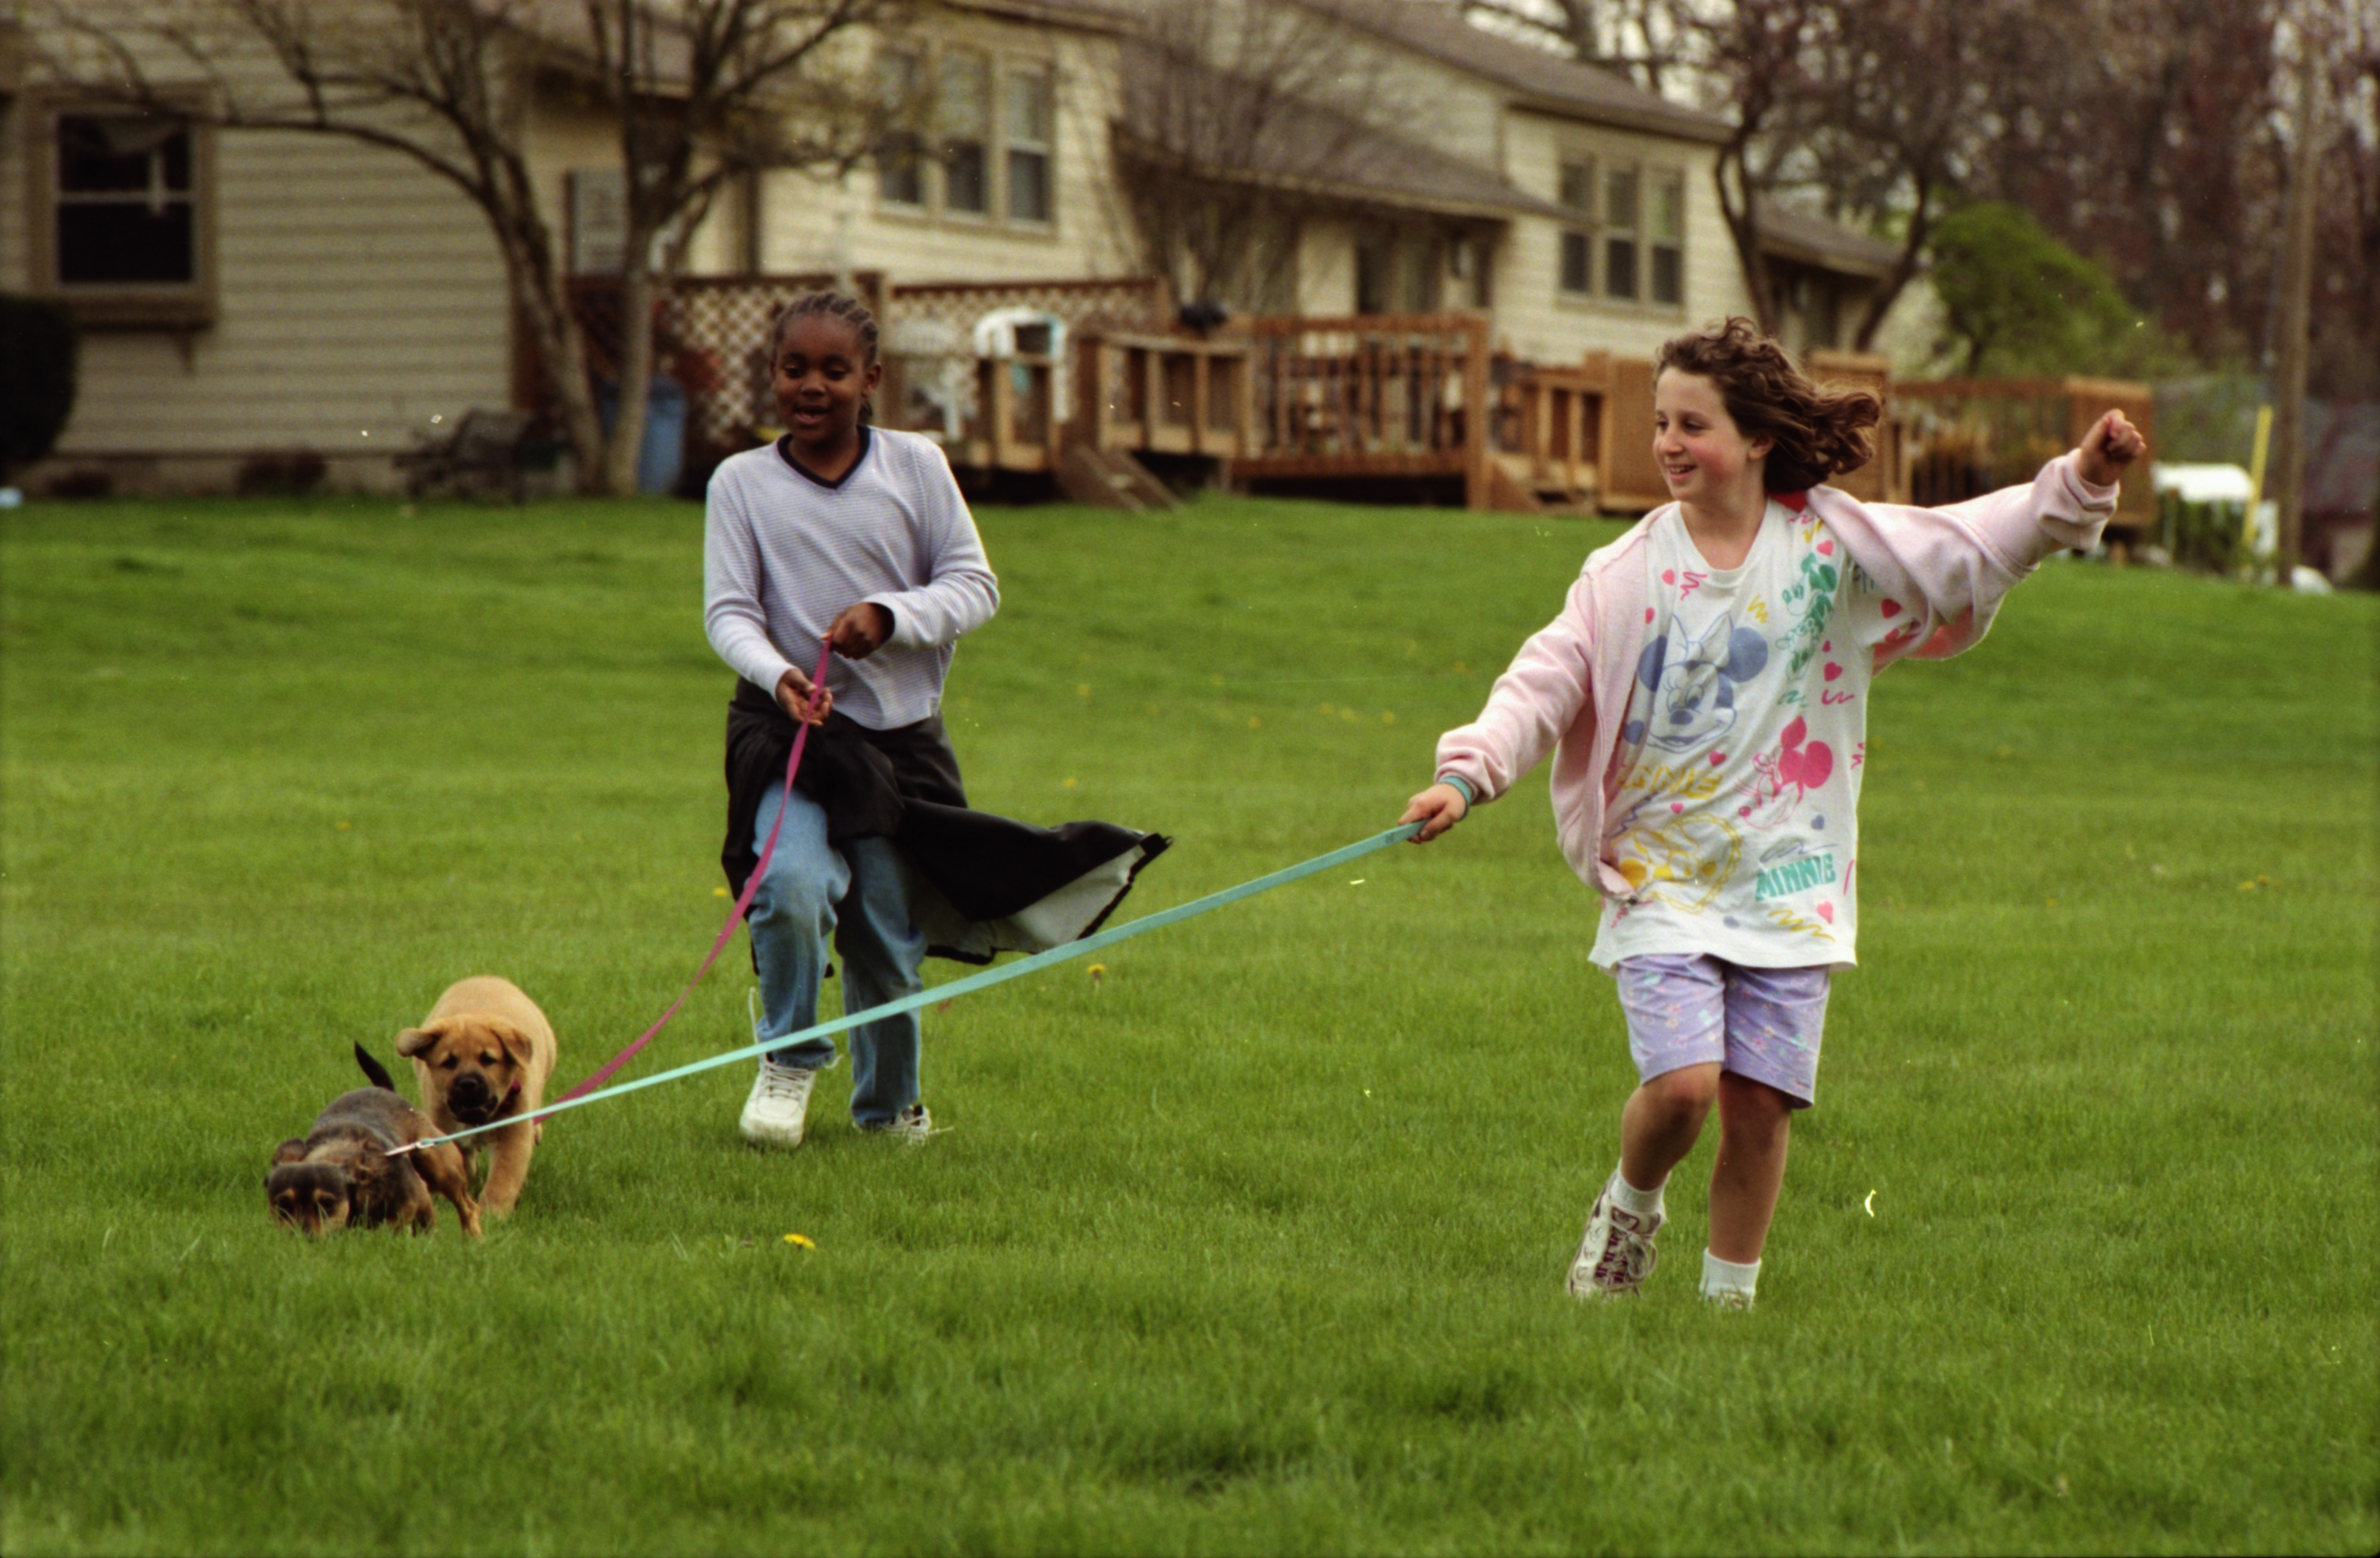 Young Residents of The Village Walk Their Dogs, April 1999 image